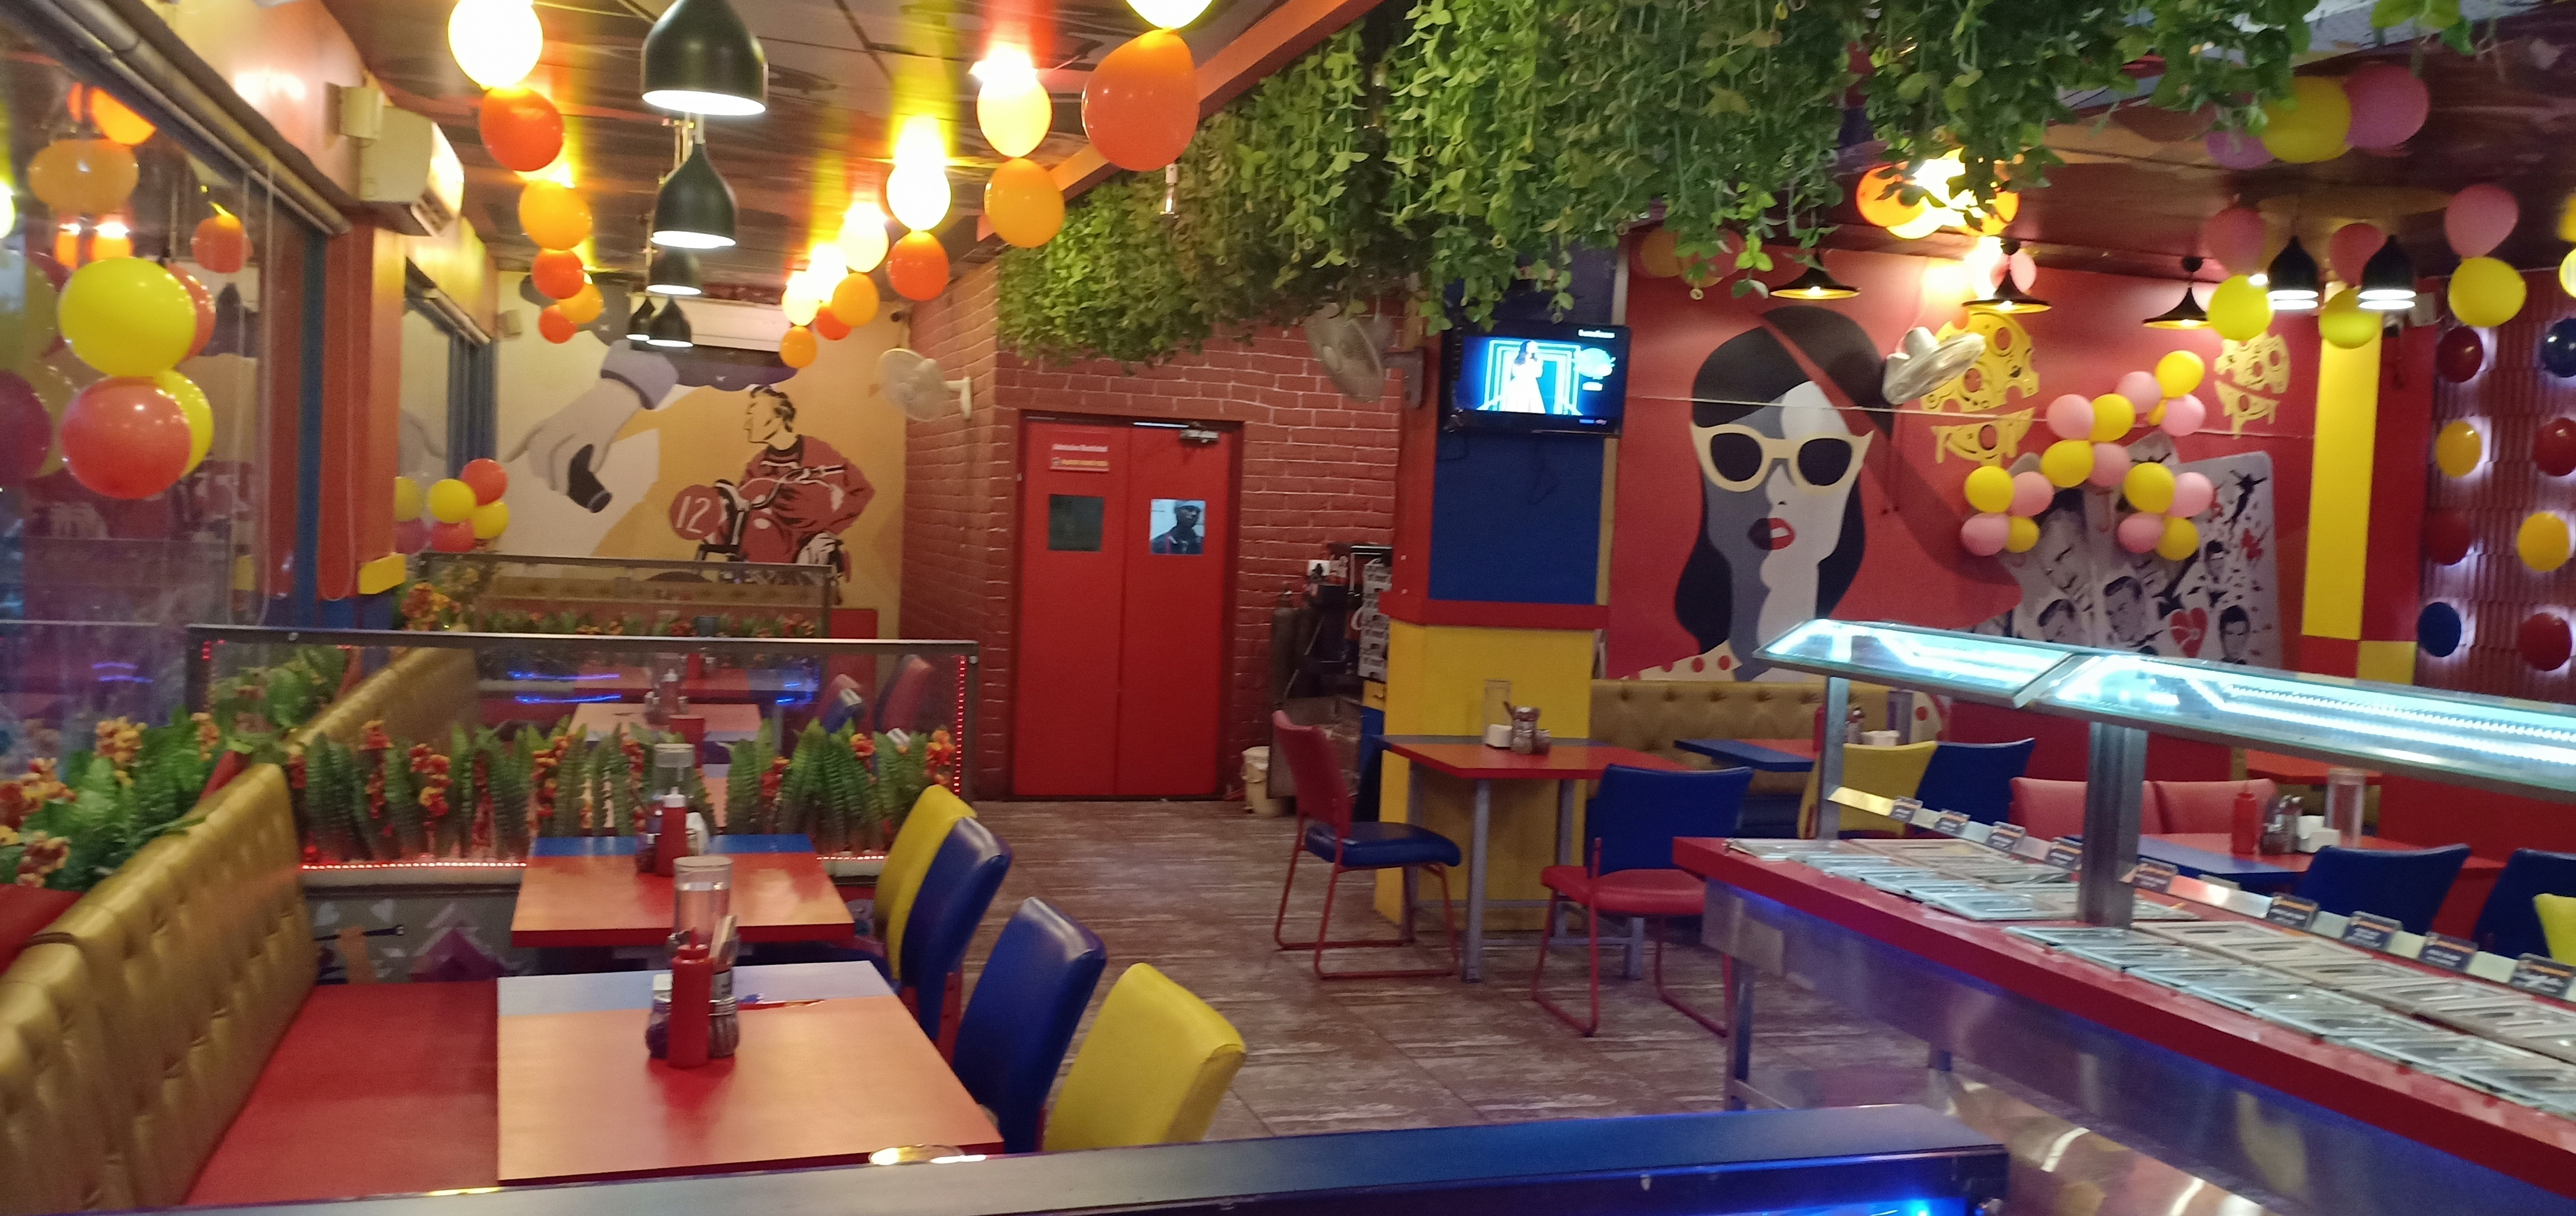 Wooddy Jhones Pizza - 4D Square Mall - Chandkheda - Ahmedabad Image